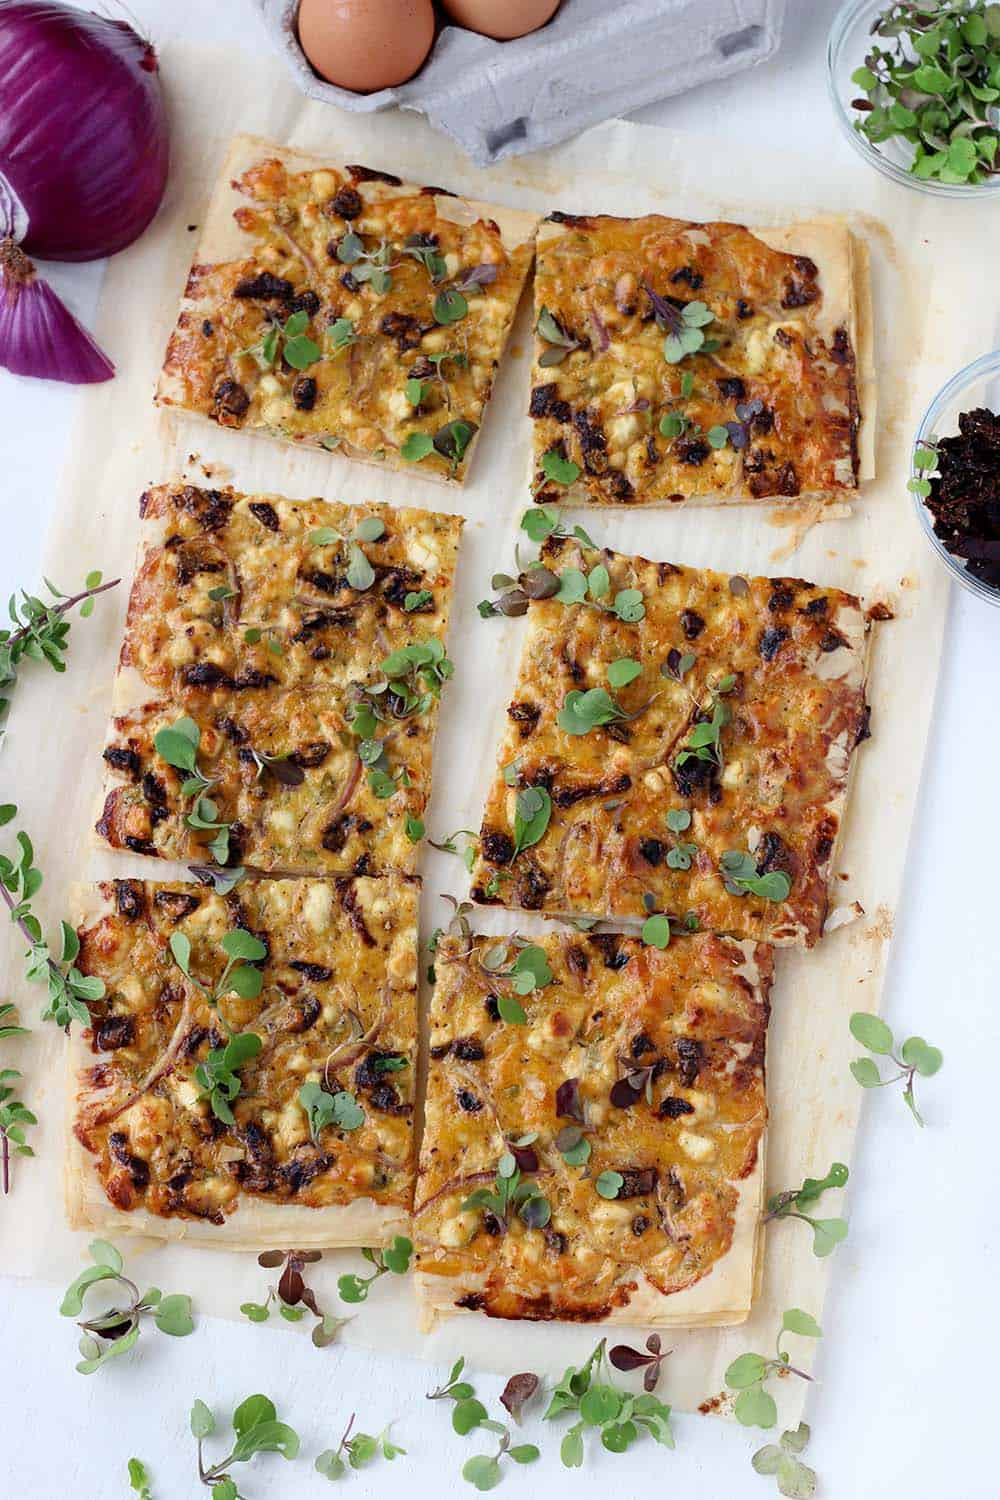 This Feta and Sun Dried Tomato Tart recipe is the perfect vegetarian appetizer or light meal. It's easy to make using filo(phyllo) dough, or even puff pastry.